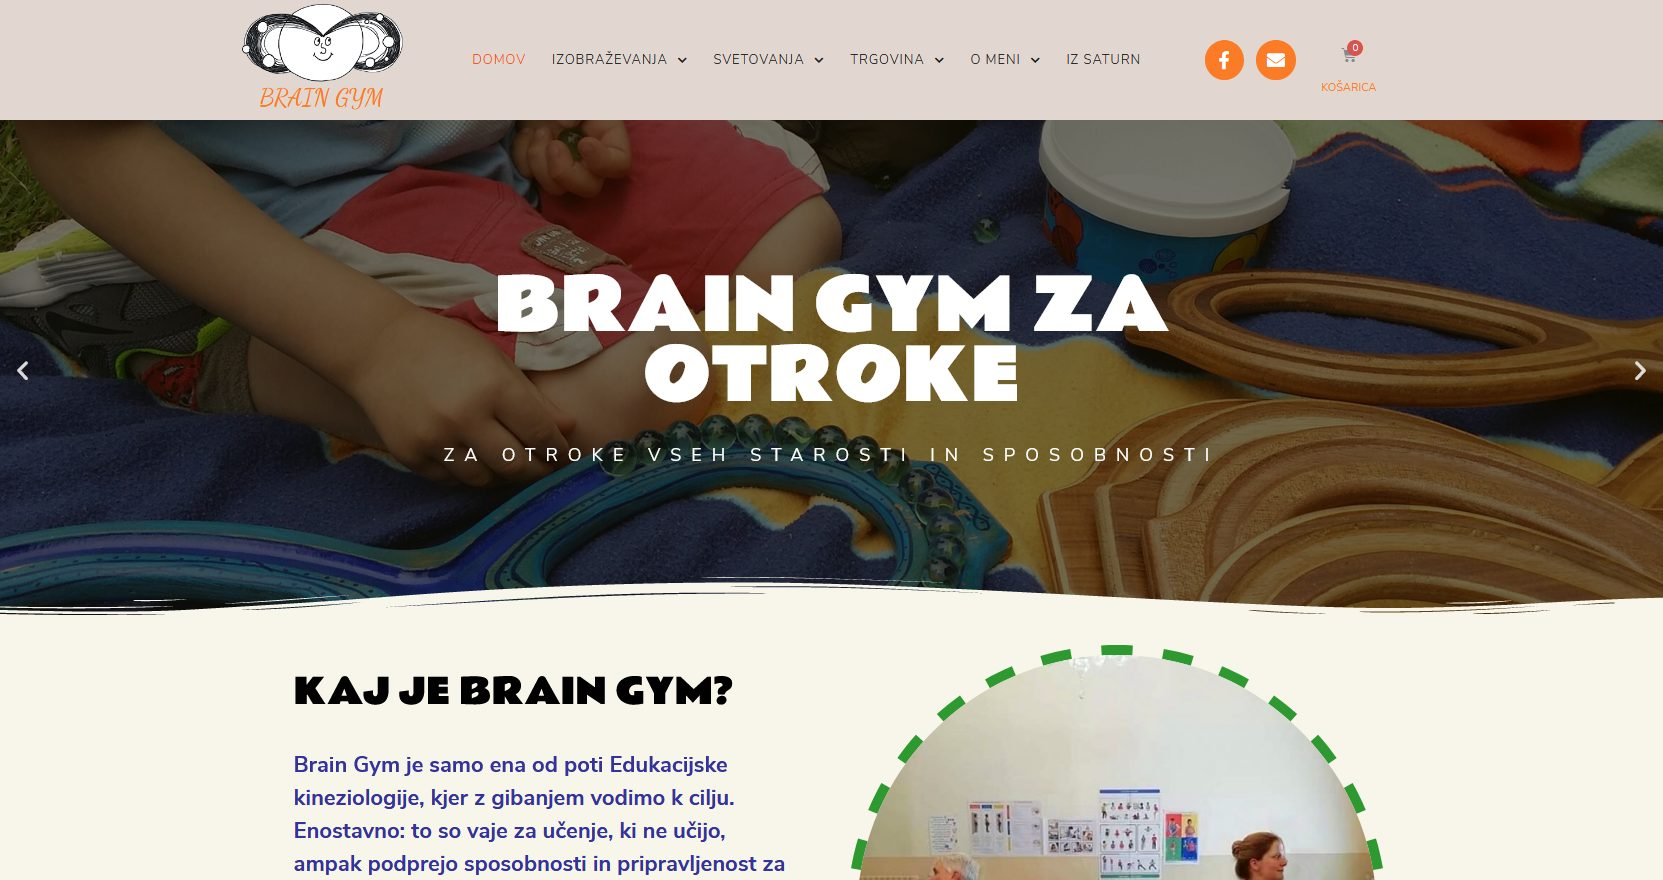 website design example - Brain Gym website by Ian Middleton